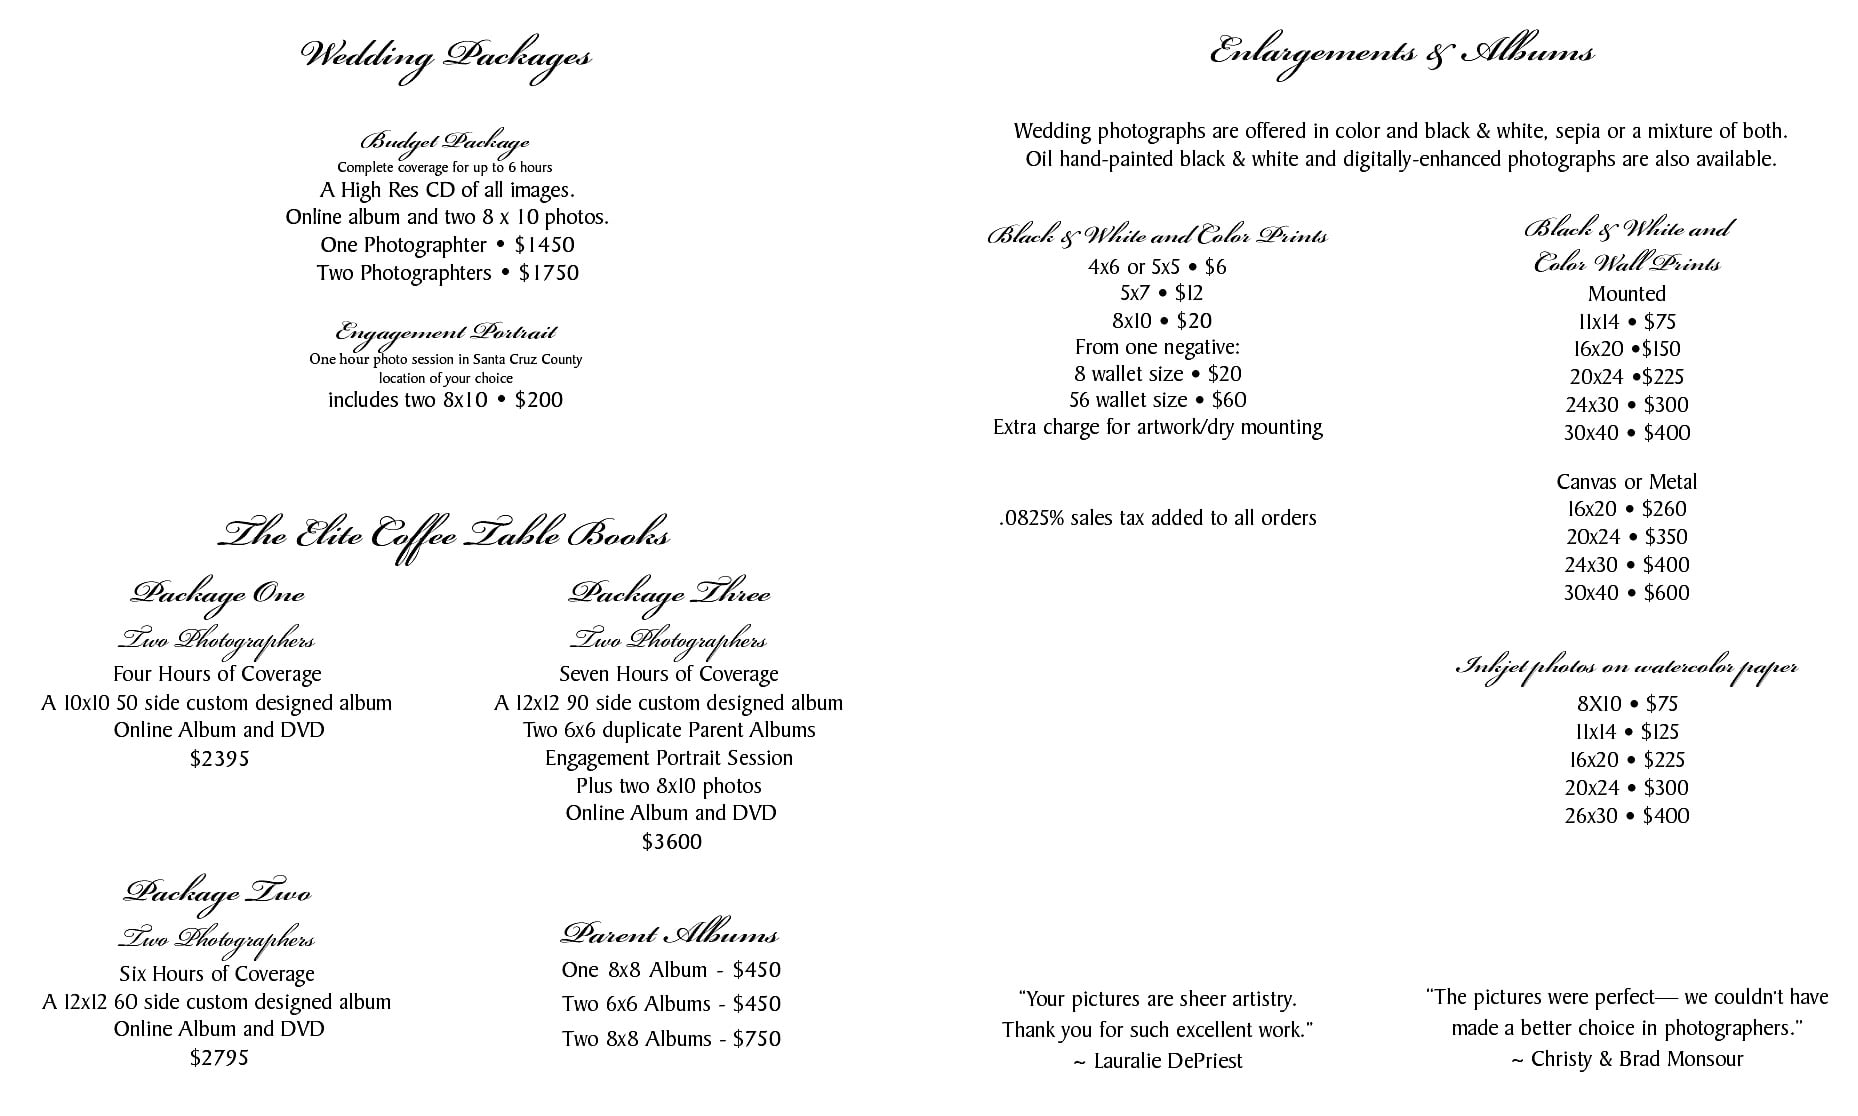 Susan Helgeson Wedding Photography Packages And Pricing Menu Pdf